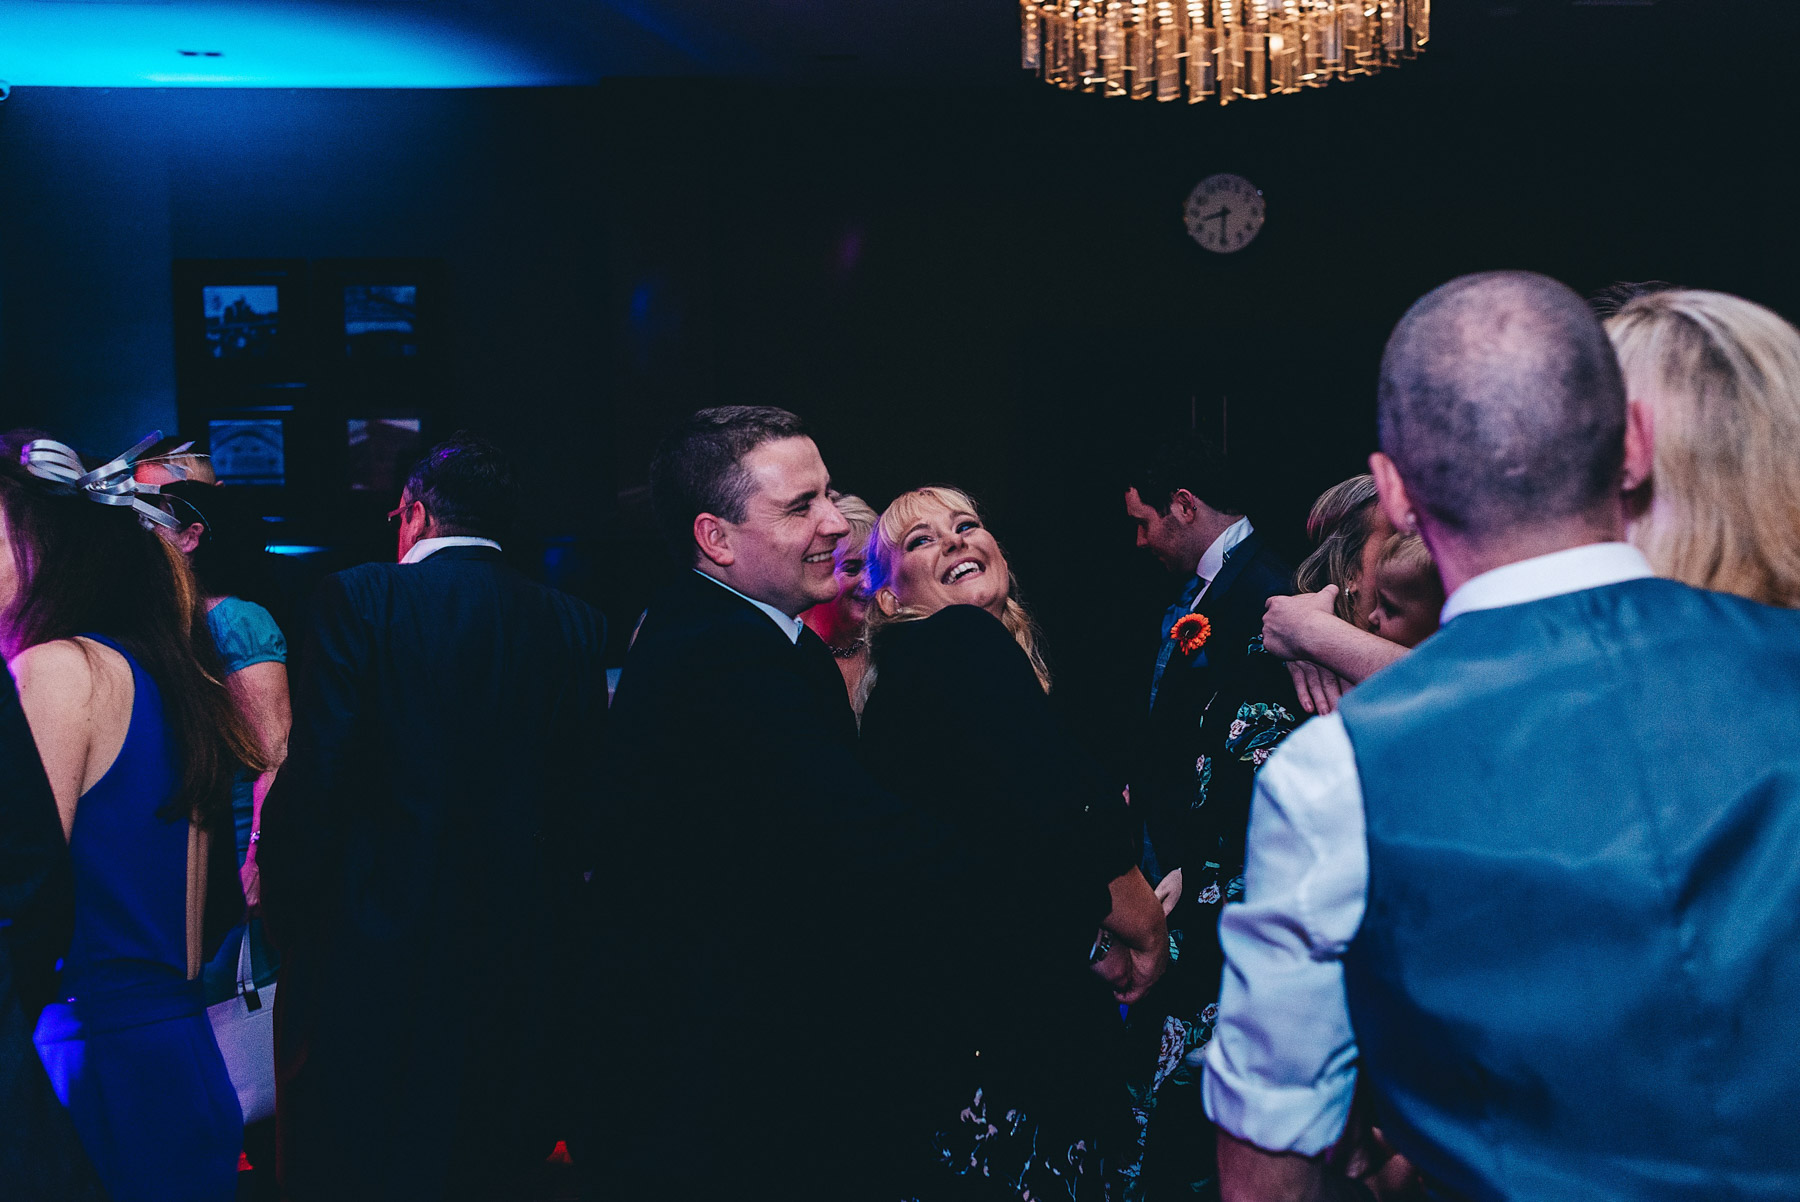 Couple dance together at wedding reception